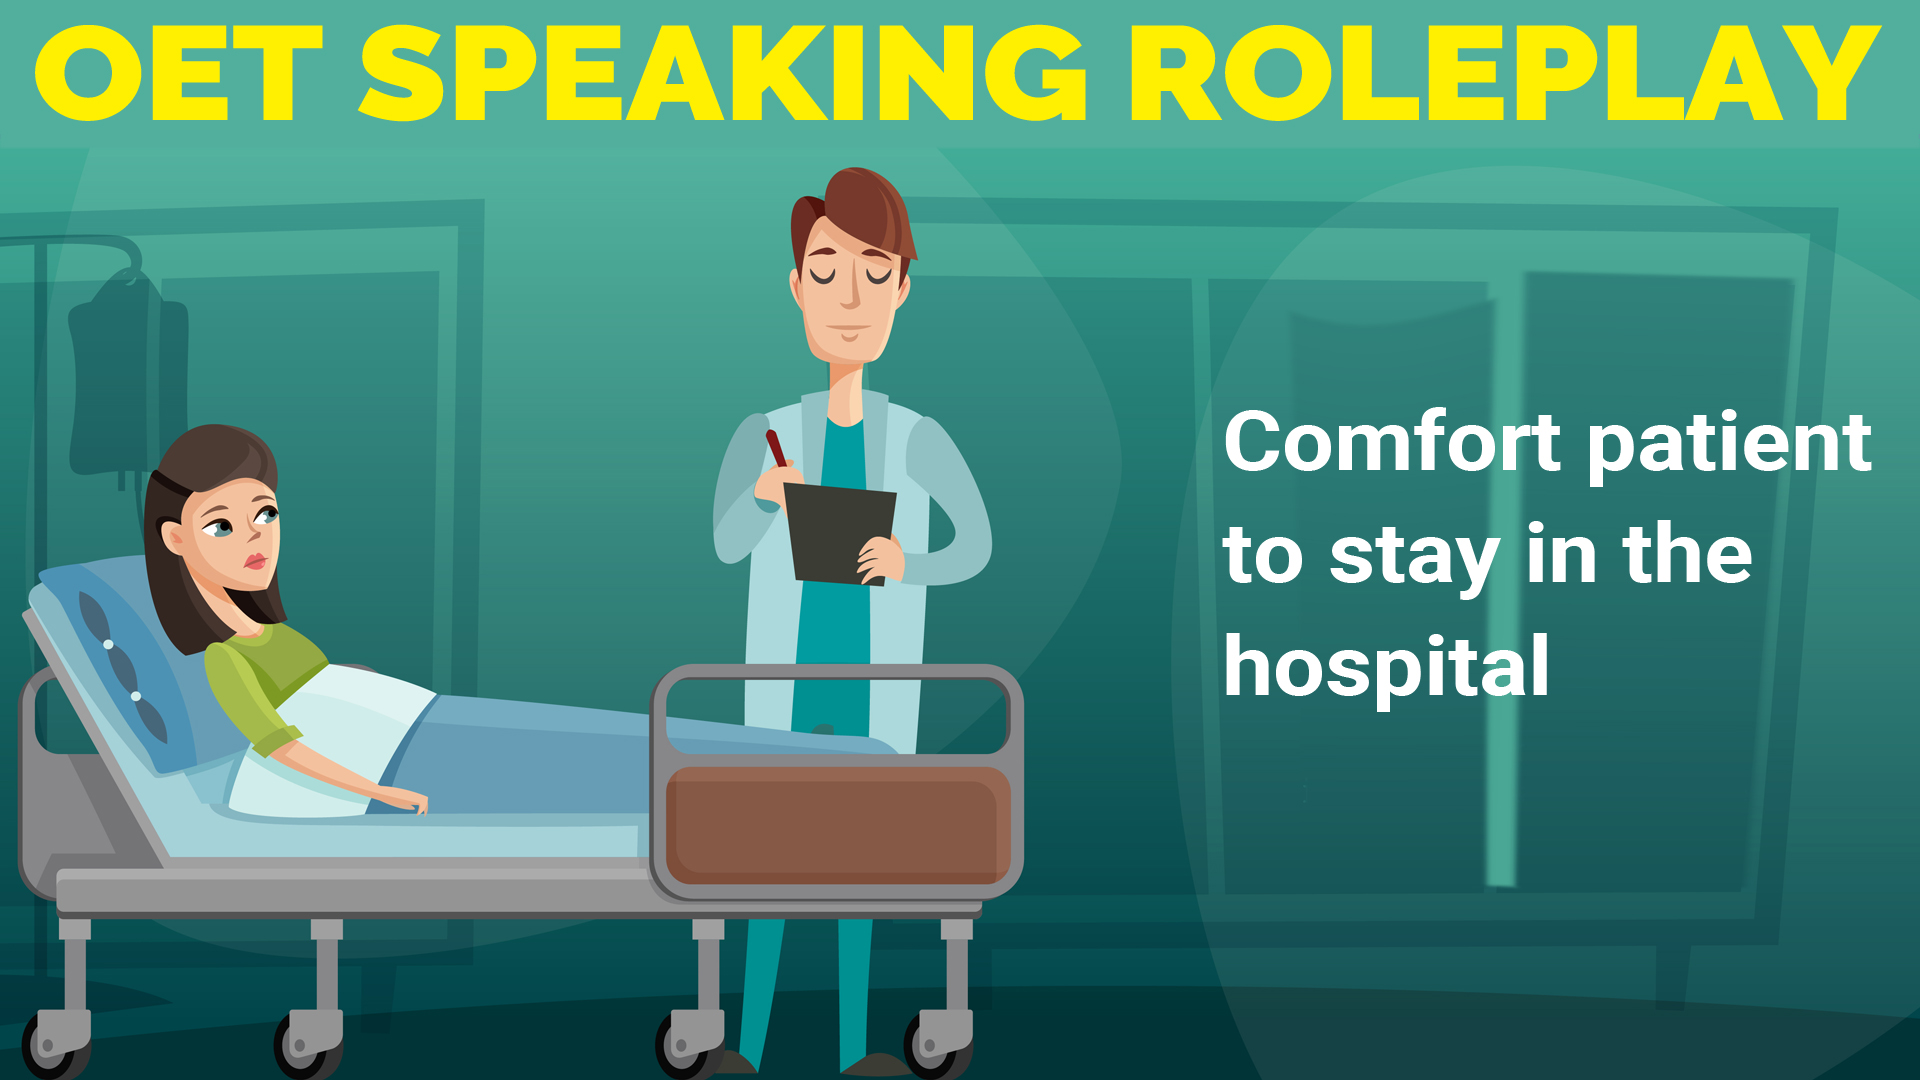 OET Speaking Roleplay - Comfort patient to stay in Hospital